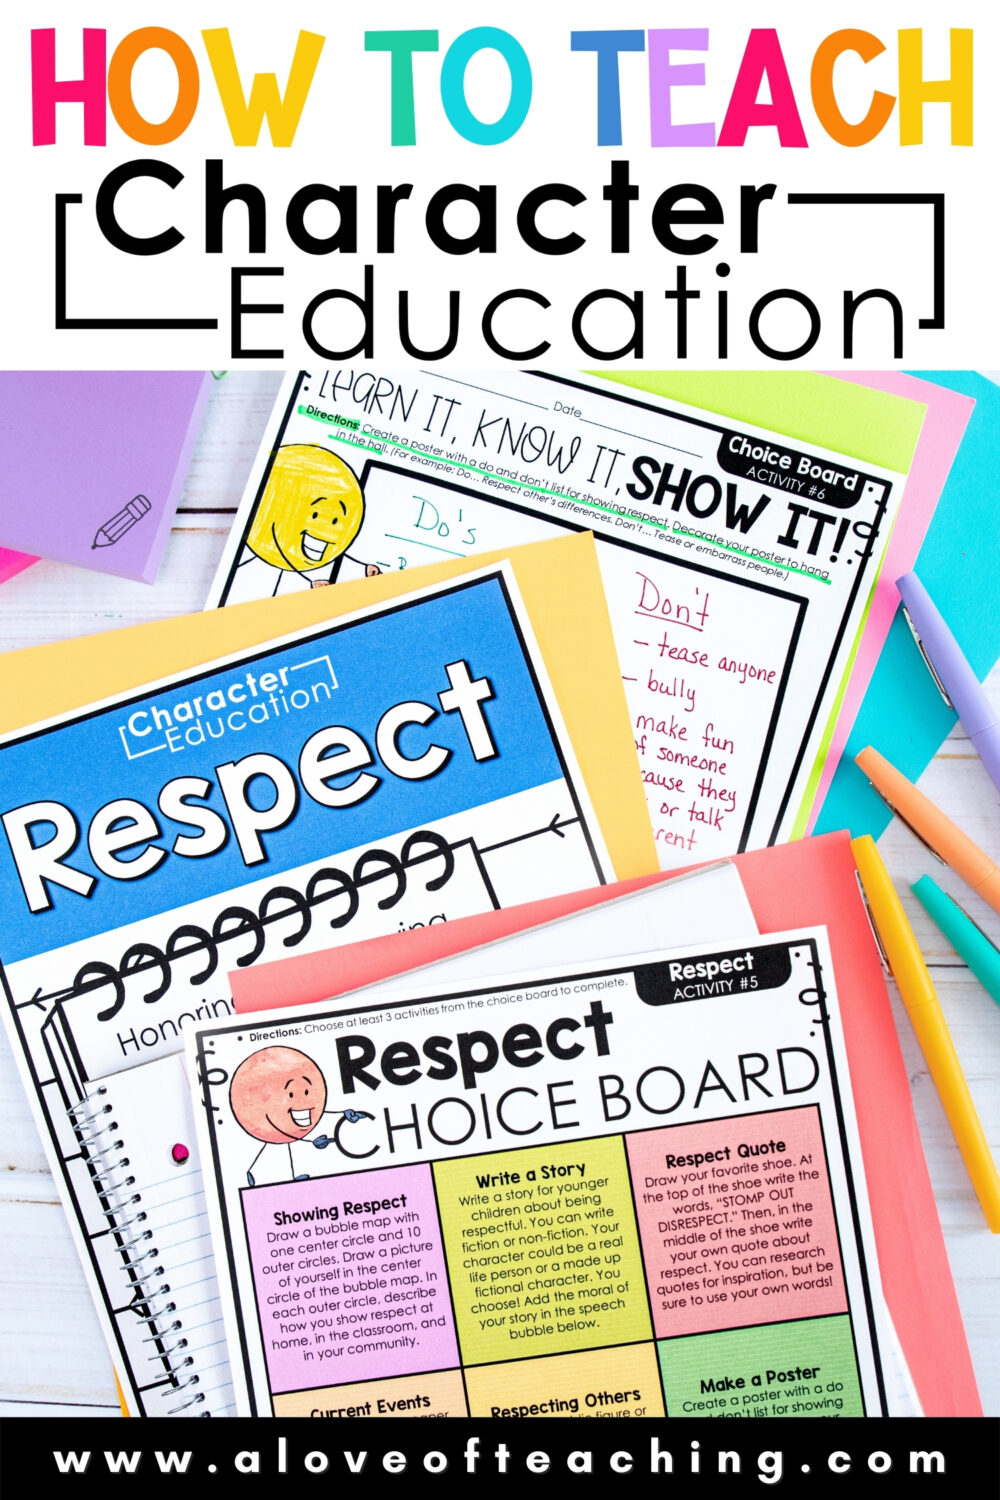 How to Teach Character Education in the Elementary Classroom